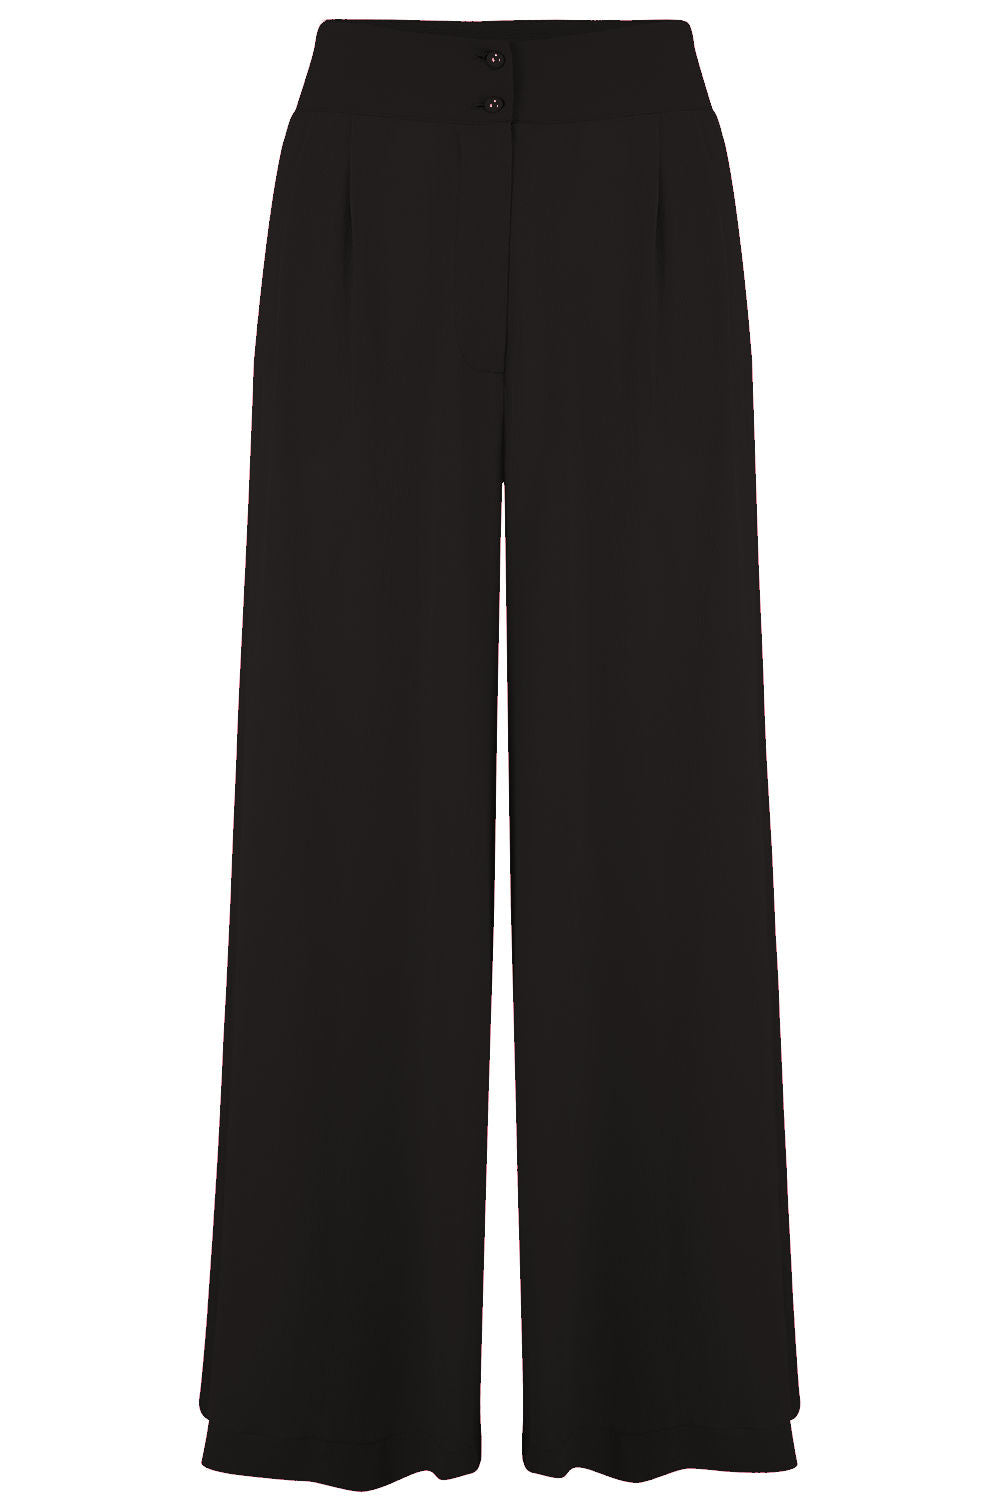 "The ""Sophia"" Plazzo Wide Leg Trousers in Black, Easy To Wear Vintage Inspired Style - RocknRomance True 1940s & 1950s Vintage Style"